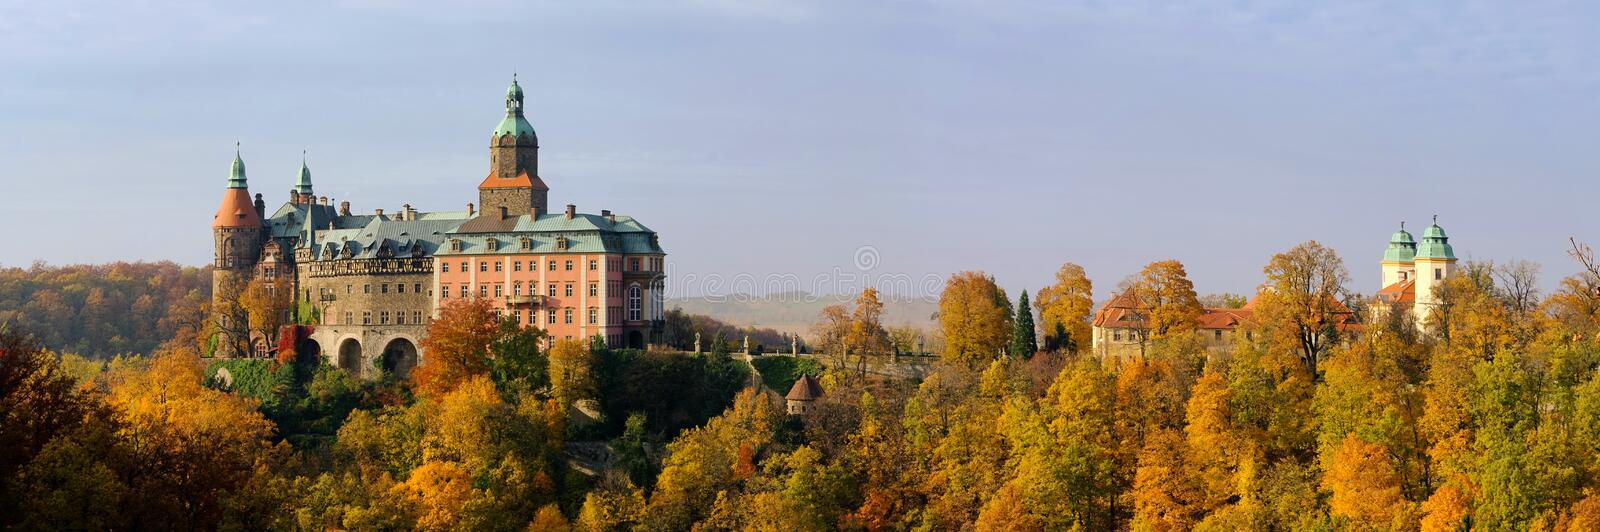 Castle Fuerstenstein royalty free stock images